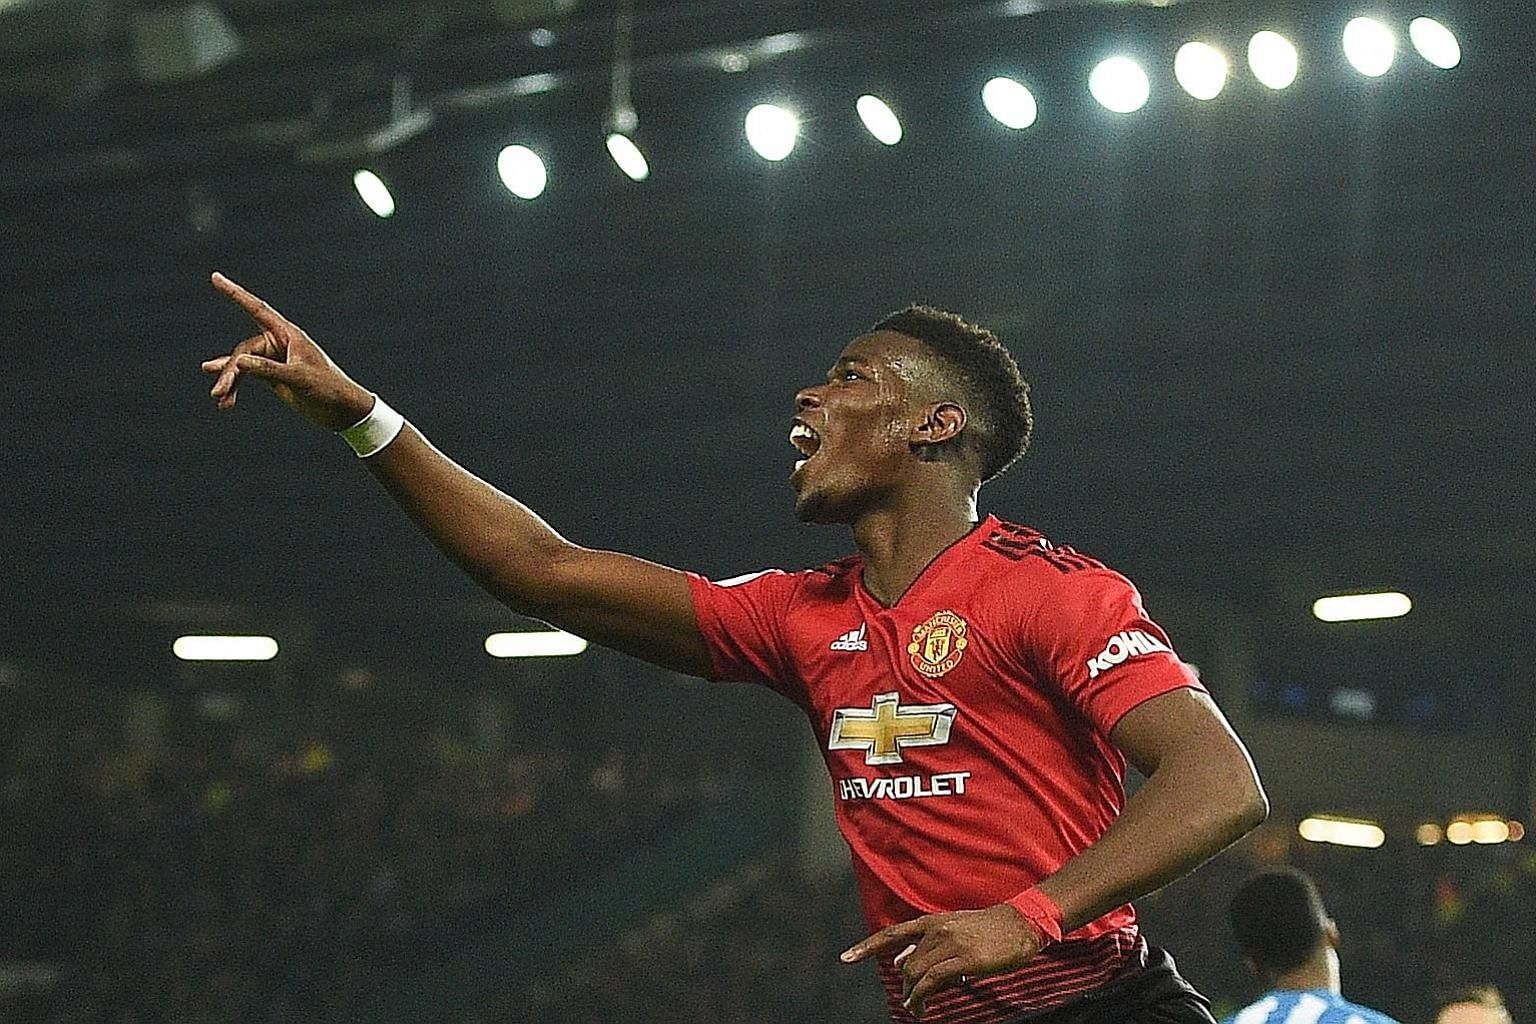 Manchester United's Paul Pogba celebrates after scoring their second goal against Huddersfield. It was the Frenchman's first goal at Old Trafford since October.